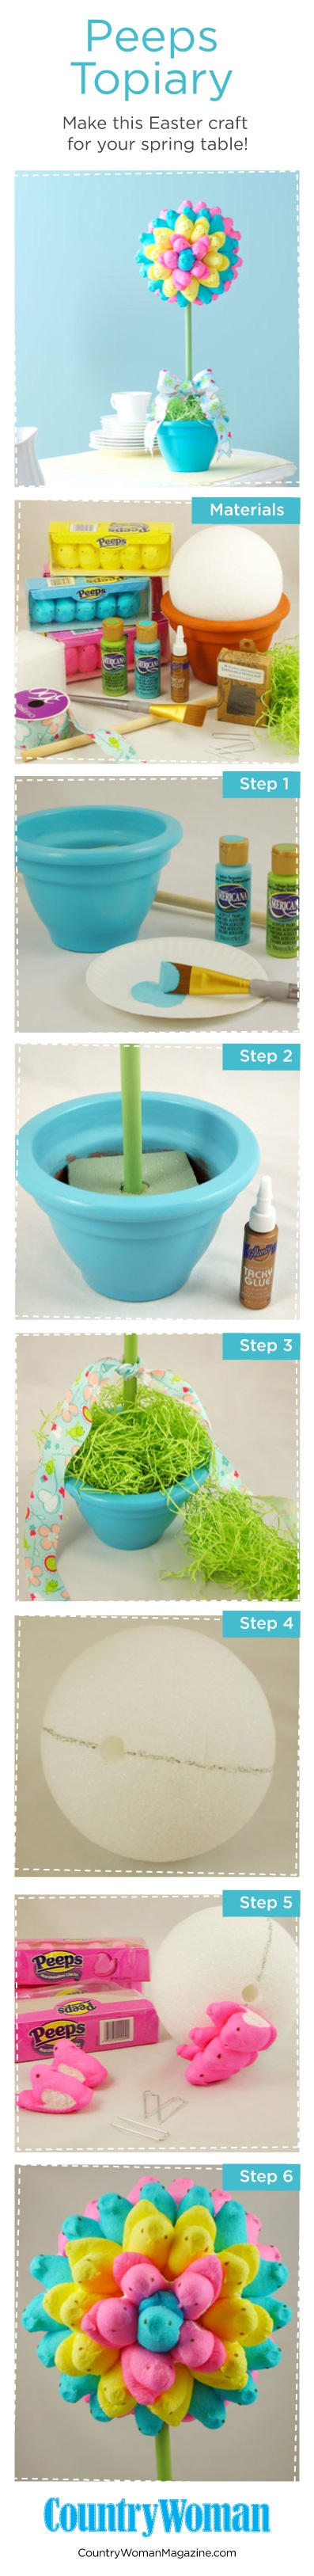 Hatch an eye-catching #Easter centerpiece using Peeps! Get instructions for the #spring #craft c/o Country Woman Magazine.